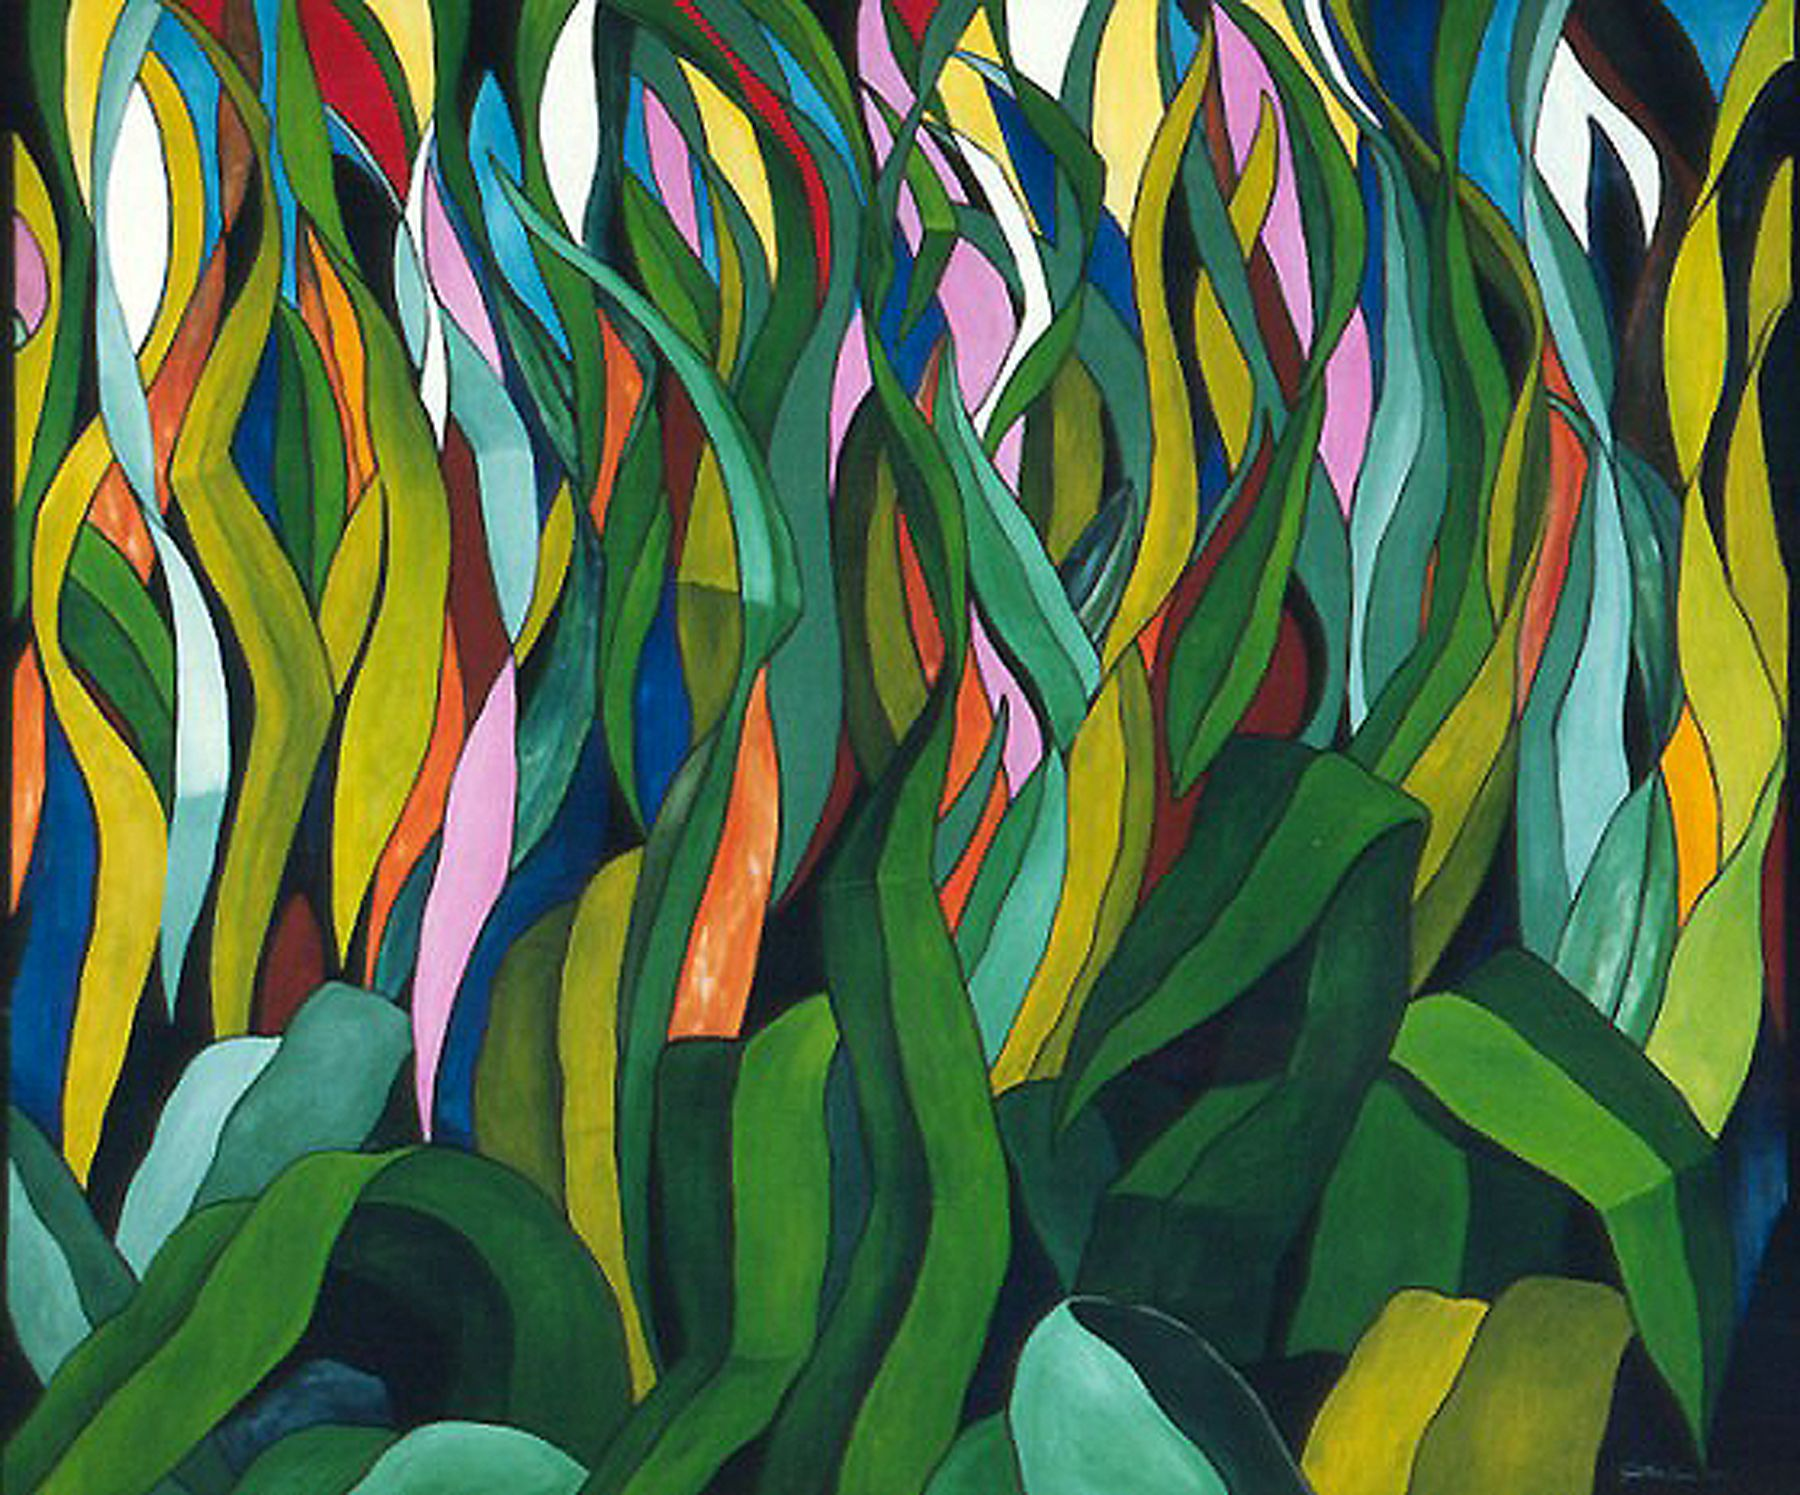 Fire grass 2001 oil on canvas 60in x 72in c jonathan